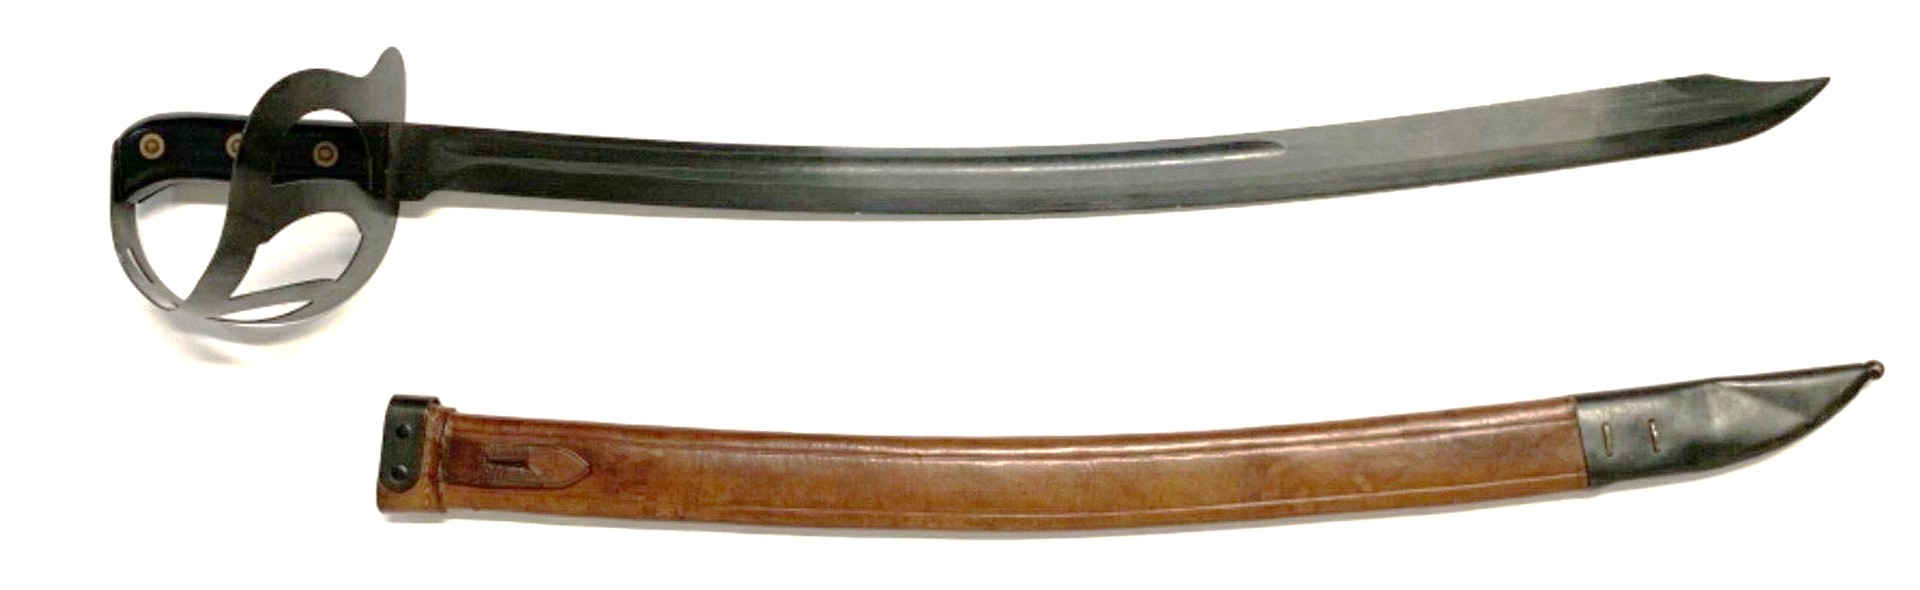 Name:  US Marked Scabbard 8.jpg Views: 219 Size:  92.2 KB